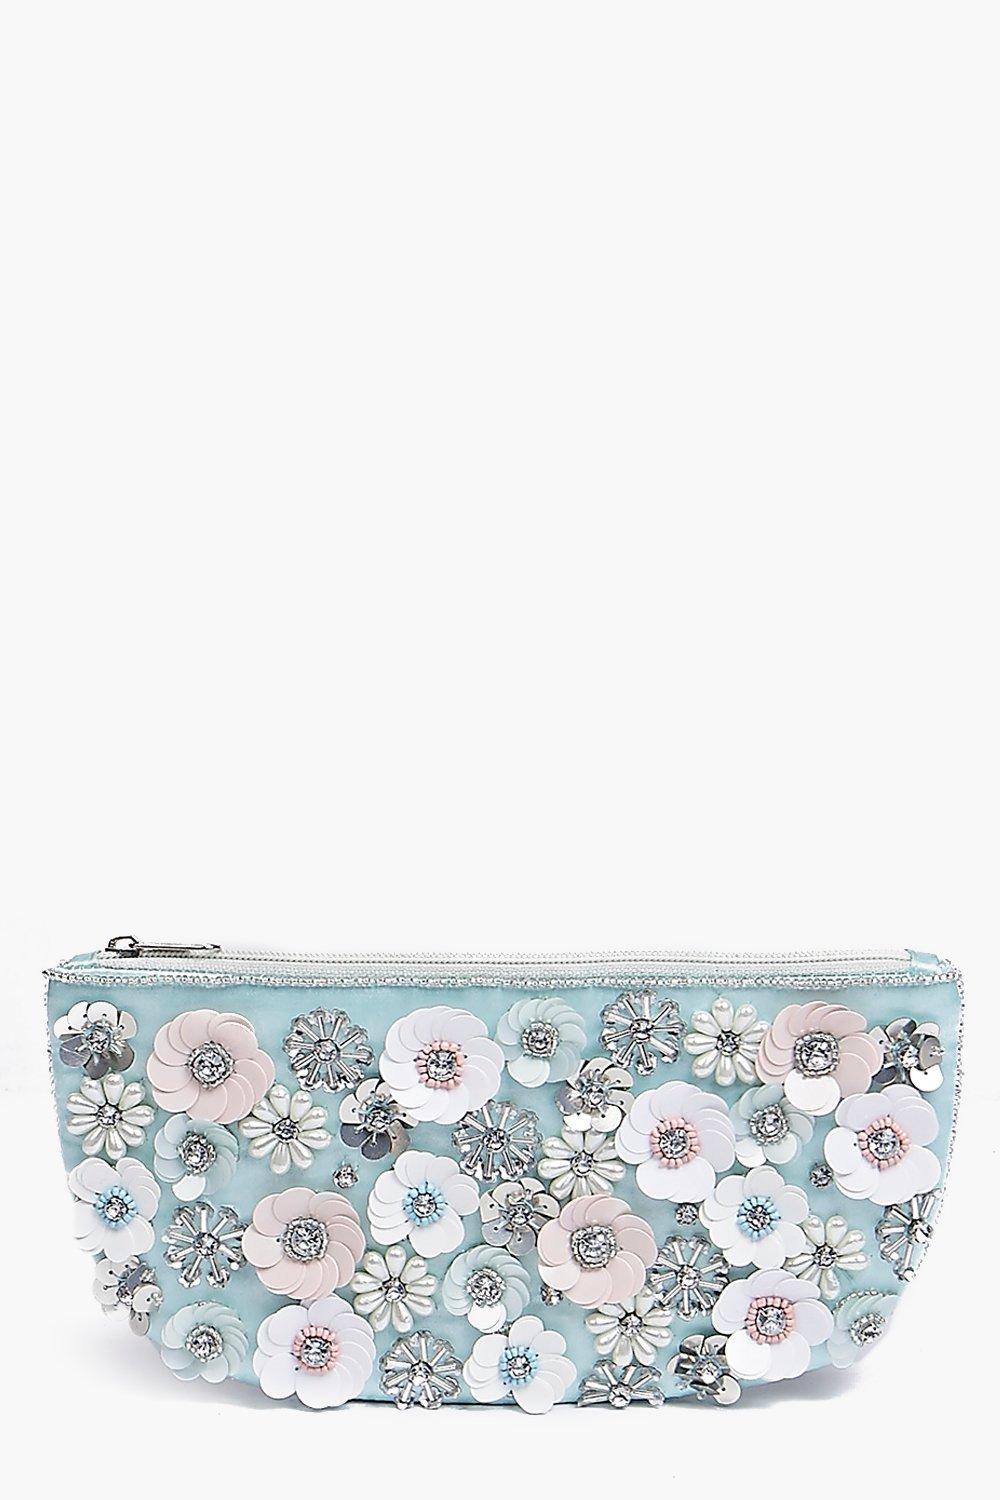 3D Floral Embellished Clutch Bag multi